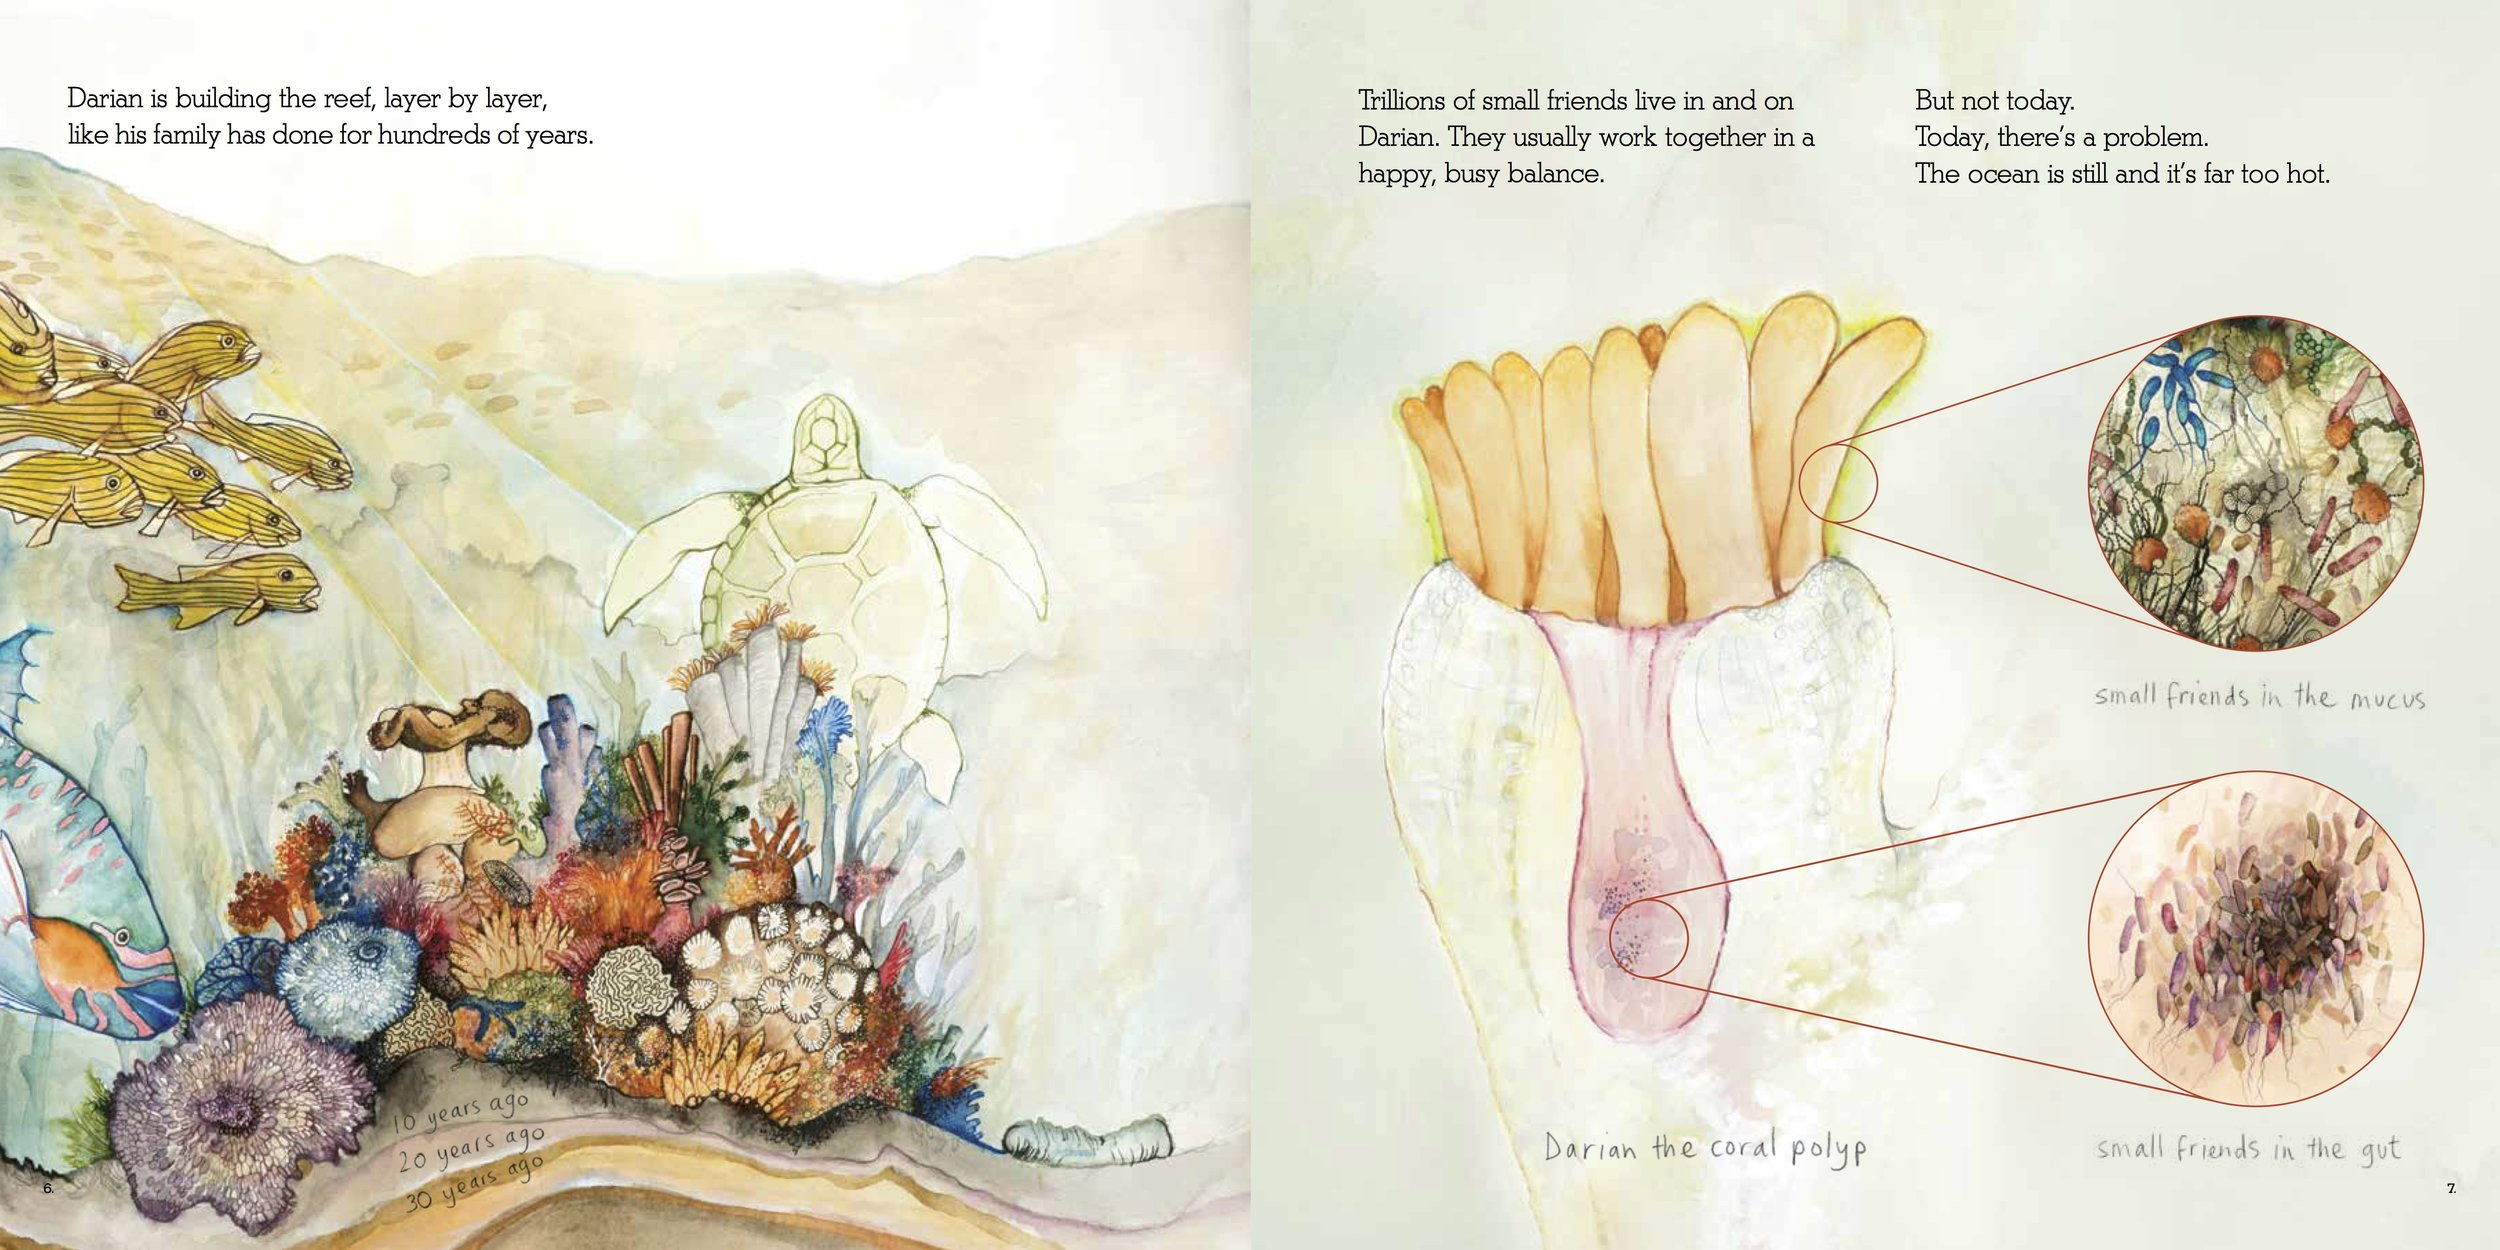 Spread from Zobi and the Zoox: A Story of Coral Bleaching. Written by Ailsa Wild, Illustrated by Aviva Reed. Created by Briony Barr & Gregory Crocetti. CSIRO Publishing & Scale Free Network, 2018.